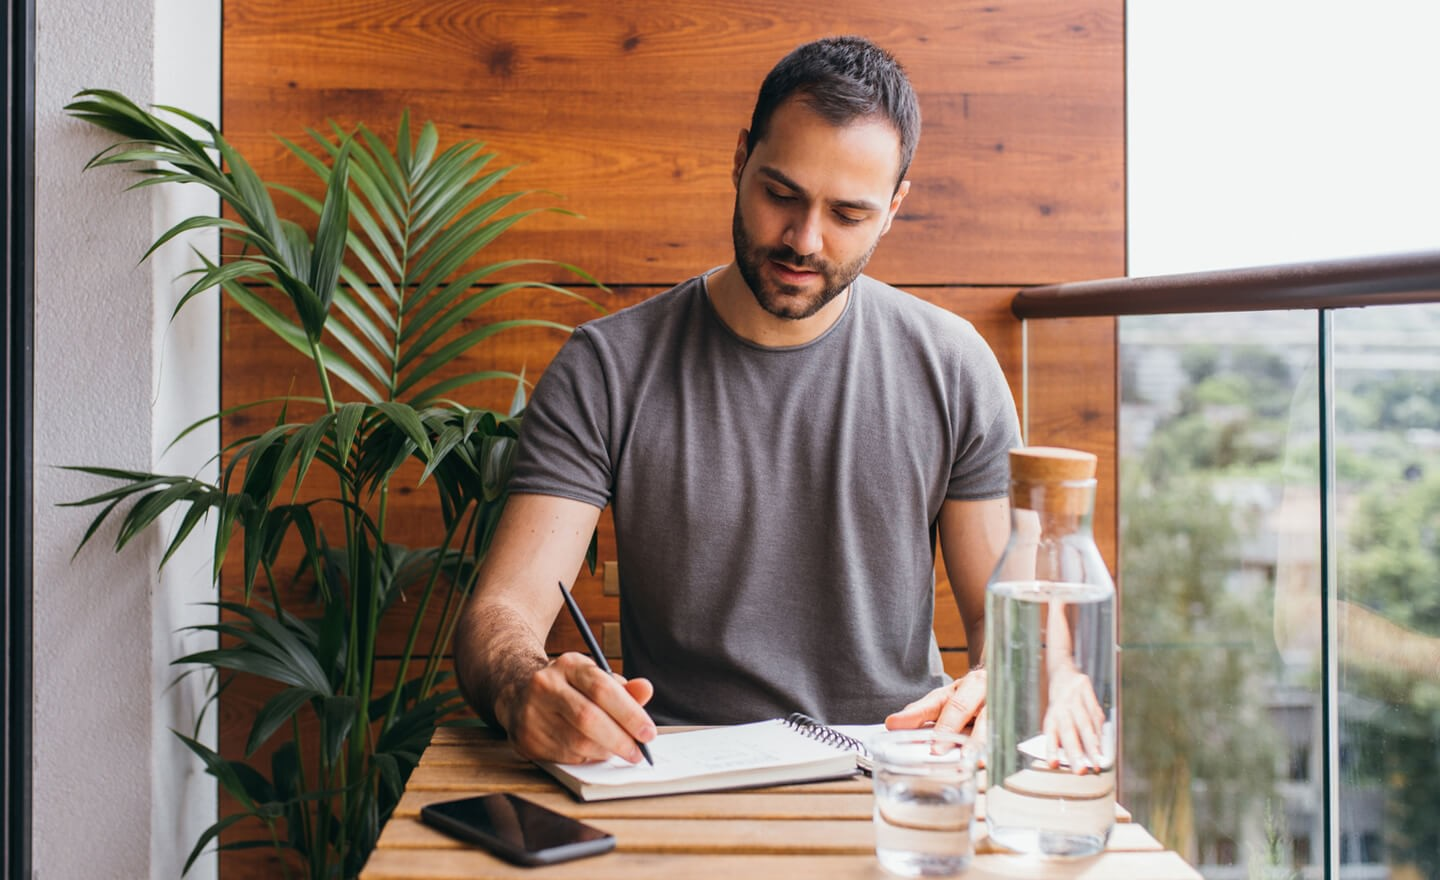 Man writing in notebook at outdoor home desk